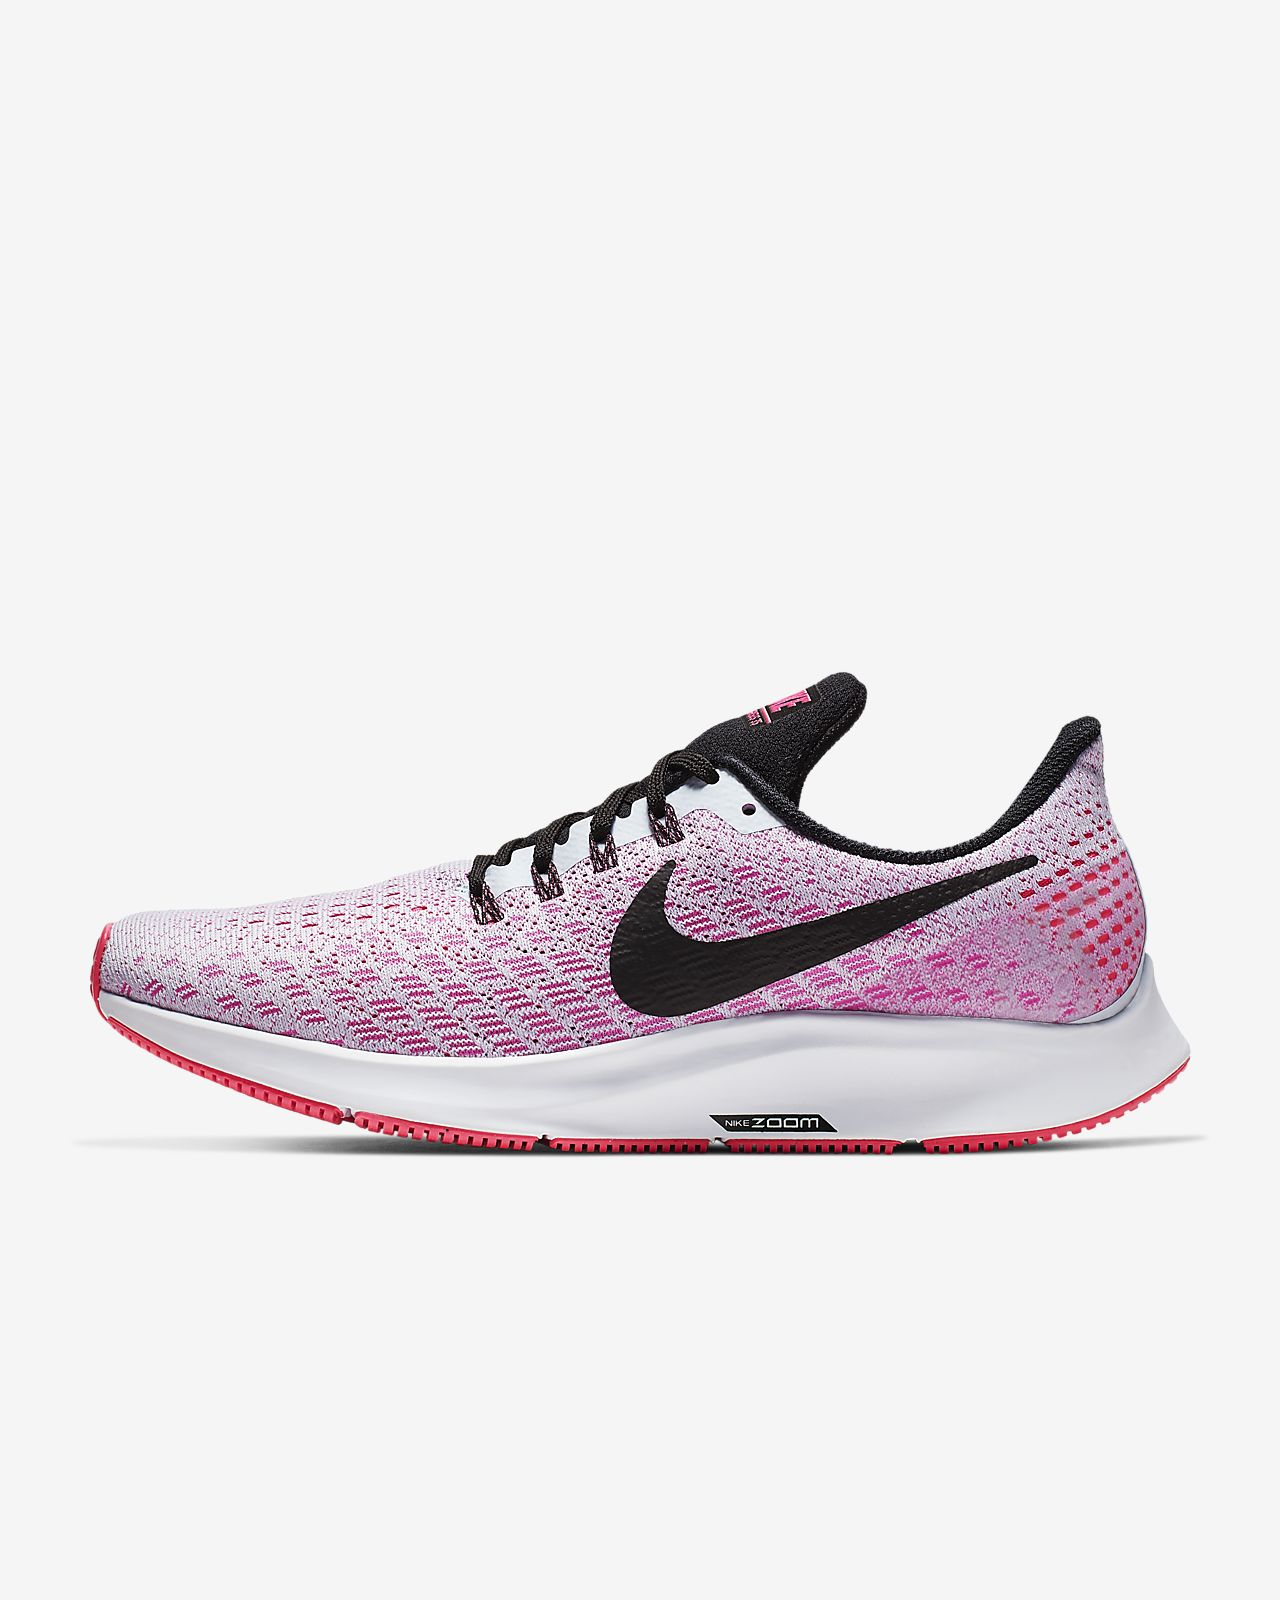 efac4f4e1 Nike Air Zoom Pegasus 35 Women s Running Shoe. Nike.com